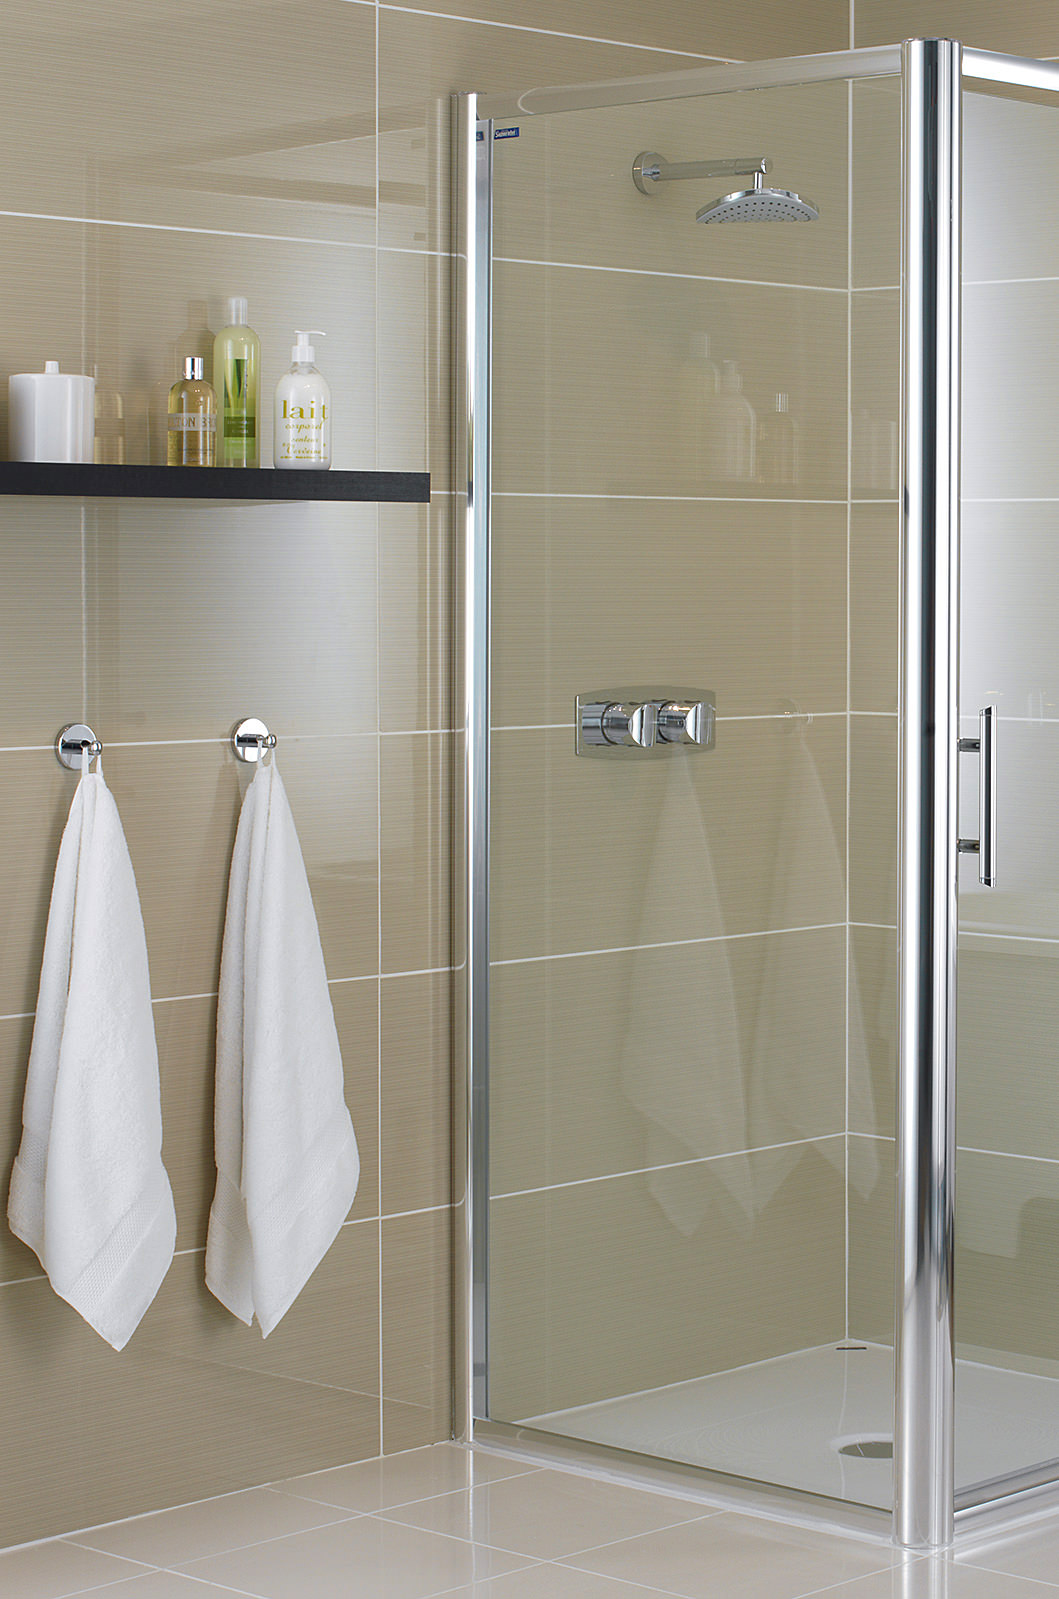 showerlux glide 6mm clear glass side panel 760mm